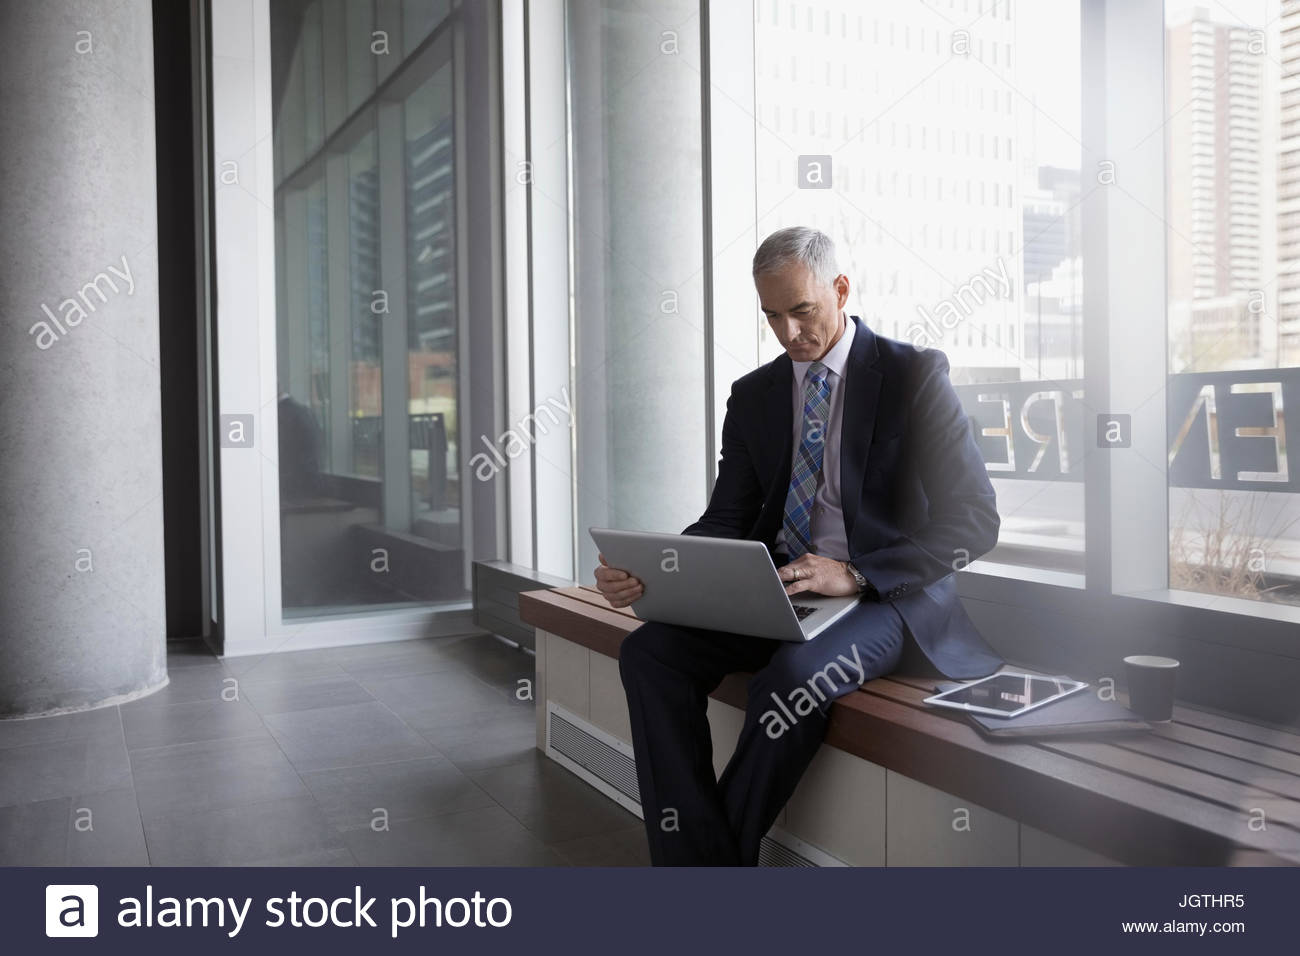 Businessman using laptop on bench in office lobby - Stock Image